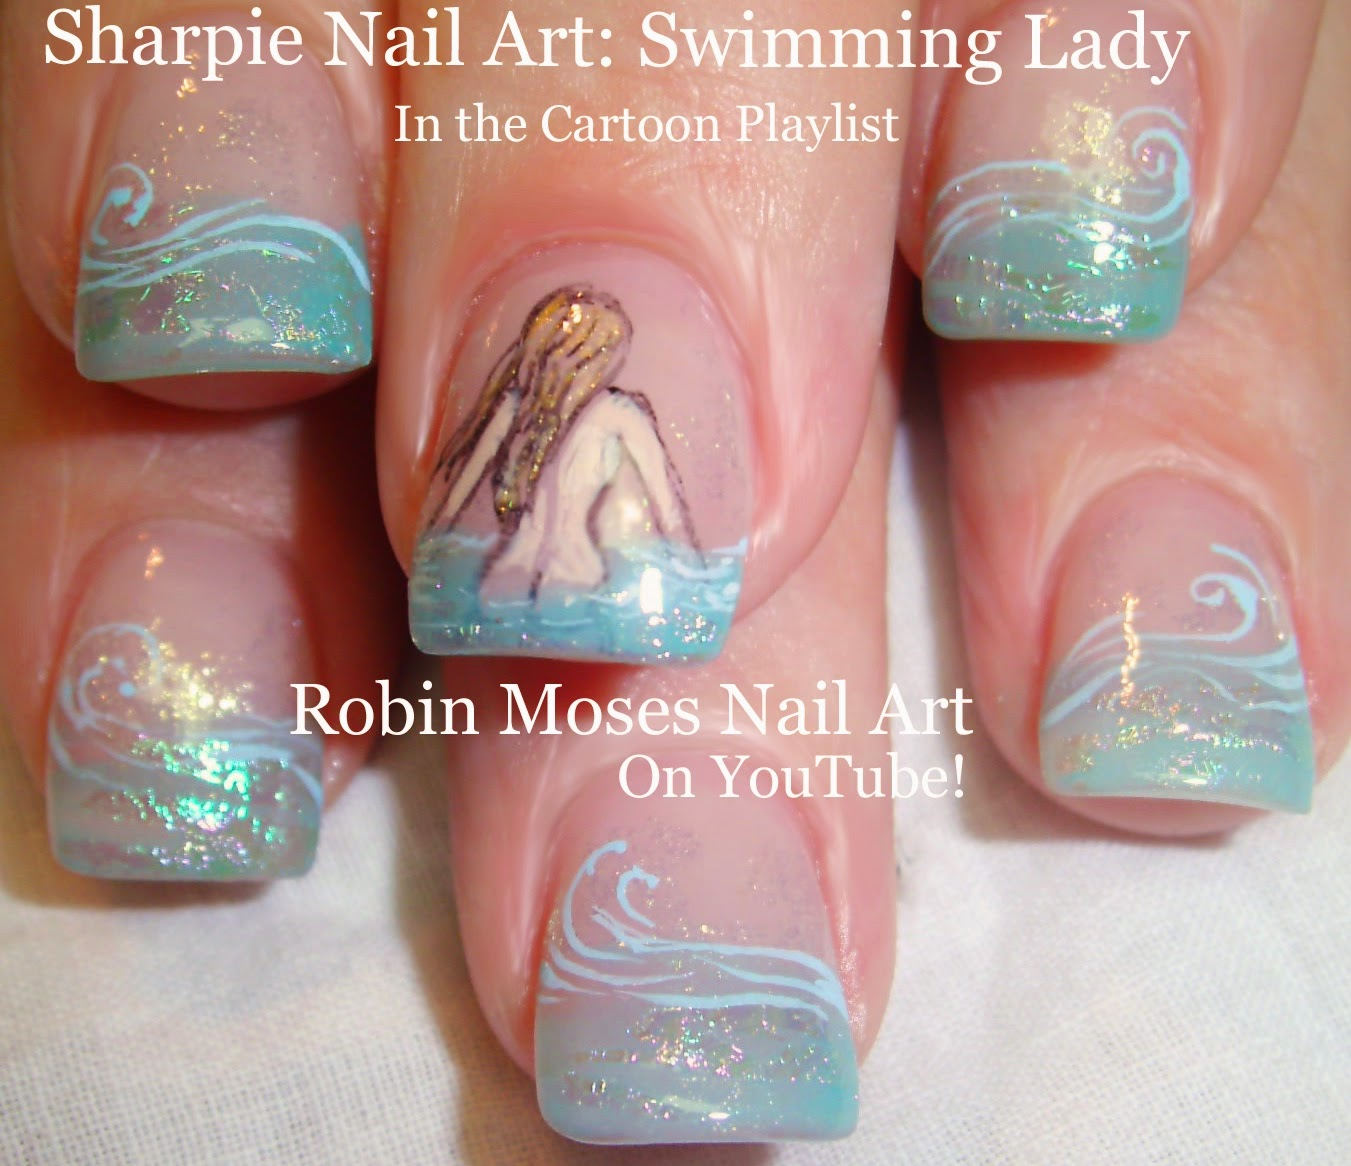 Robin moses nail art a fun nail art tutorial up for my birthday a fun nail art tutorial up for my birthday birthday suit skinny dipper nail art done with sharpie pens and foil prinsesfo Choice Image